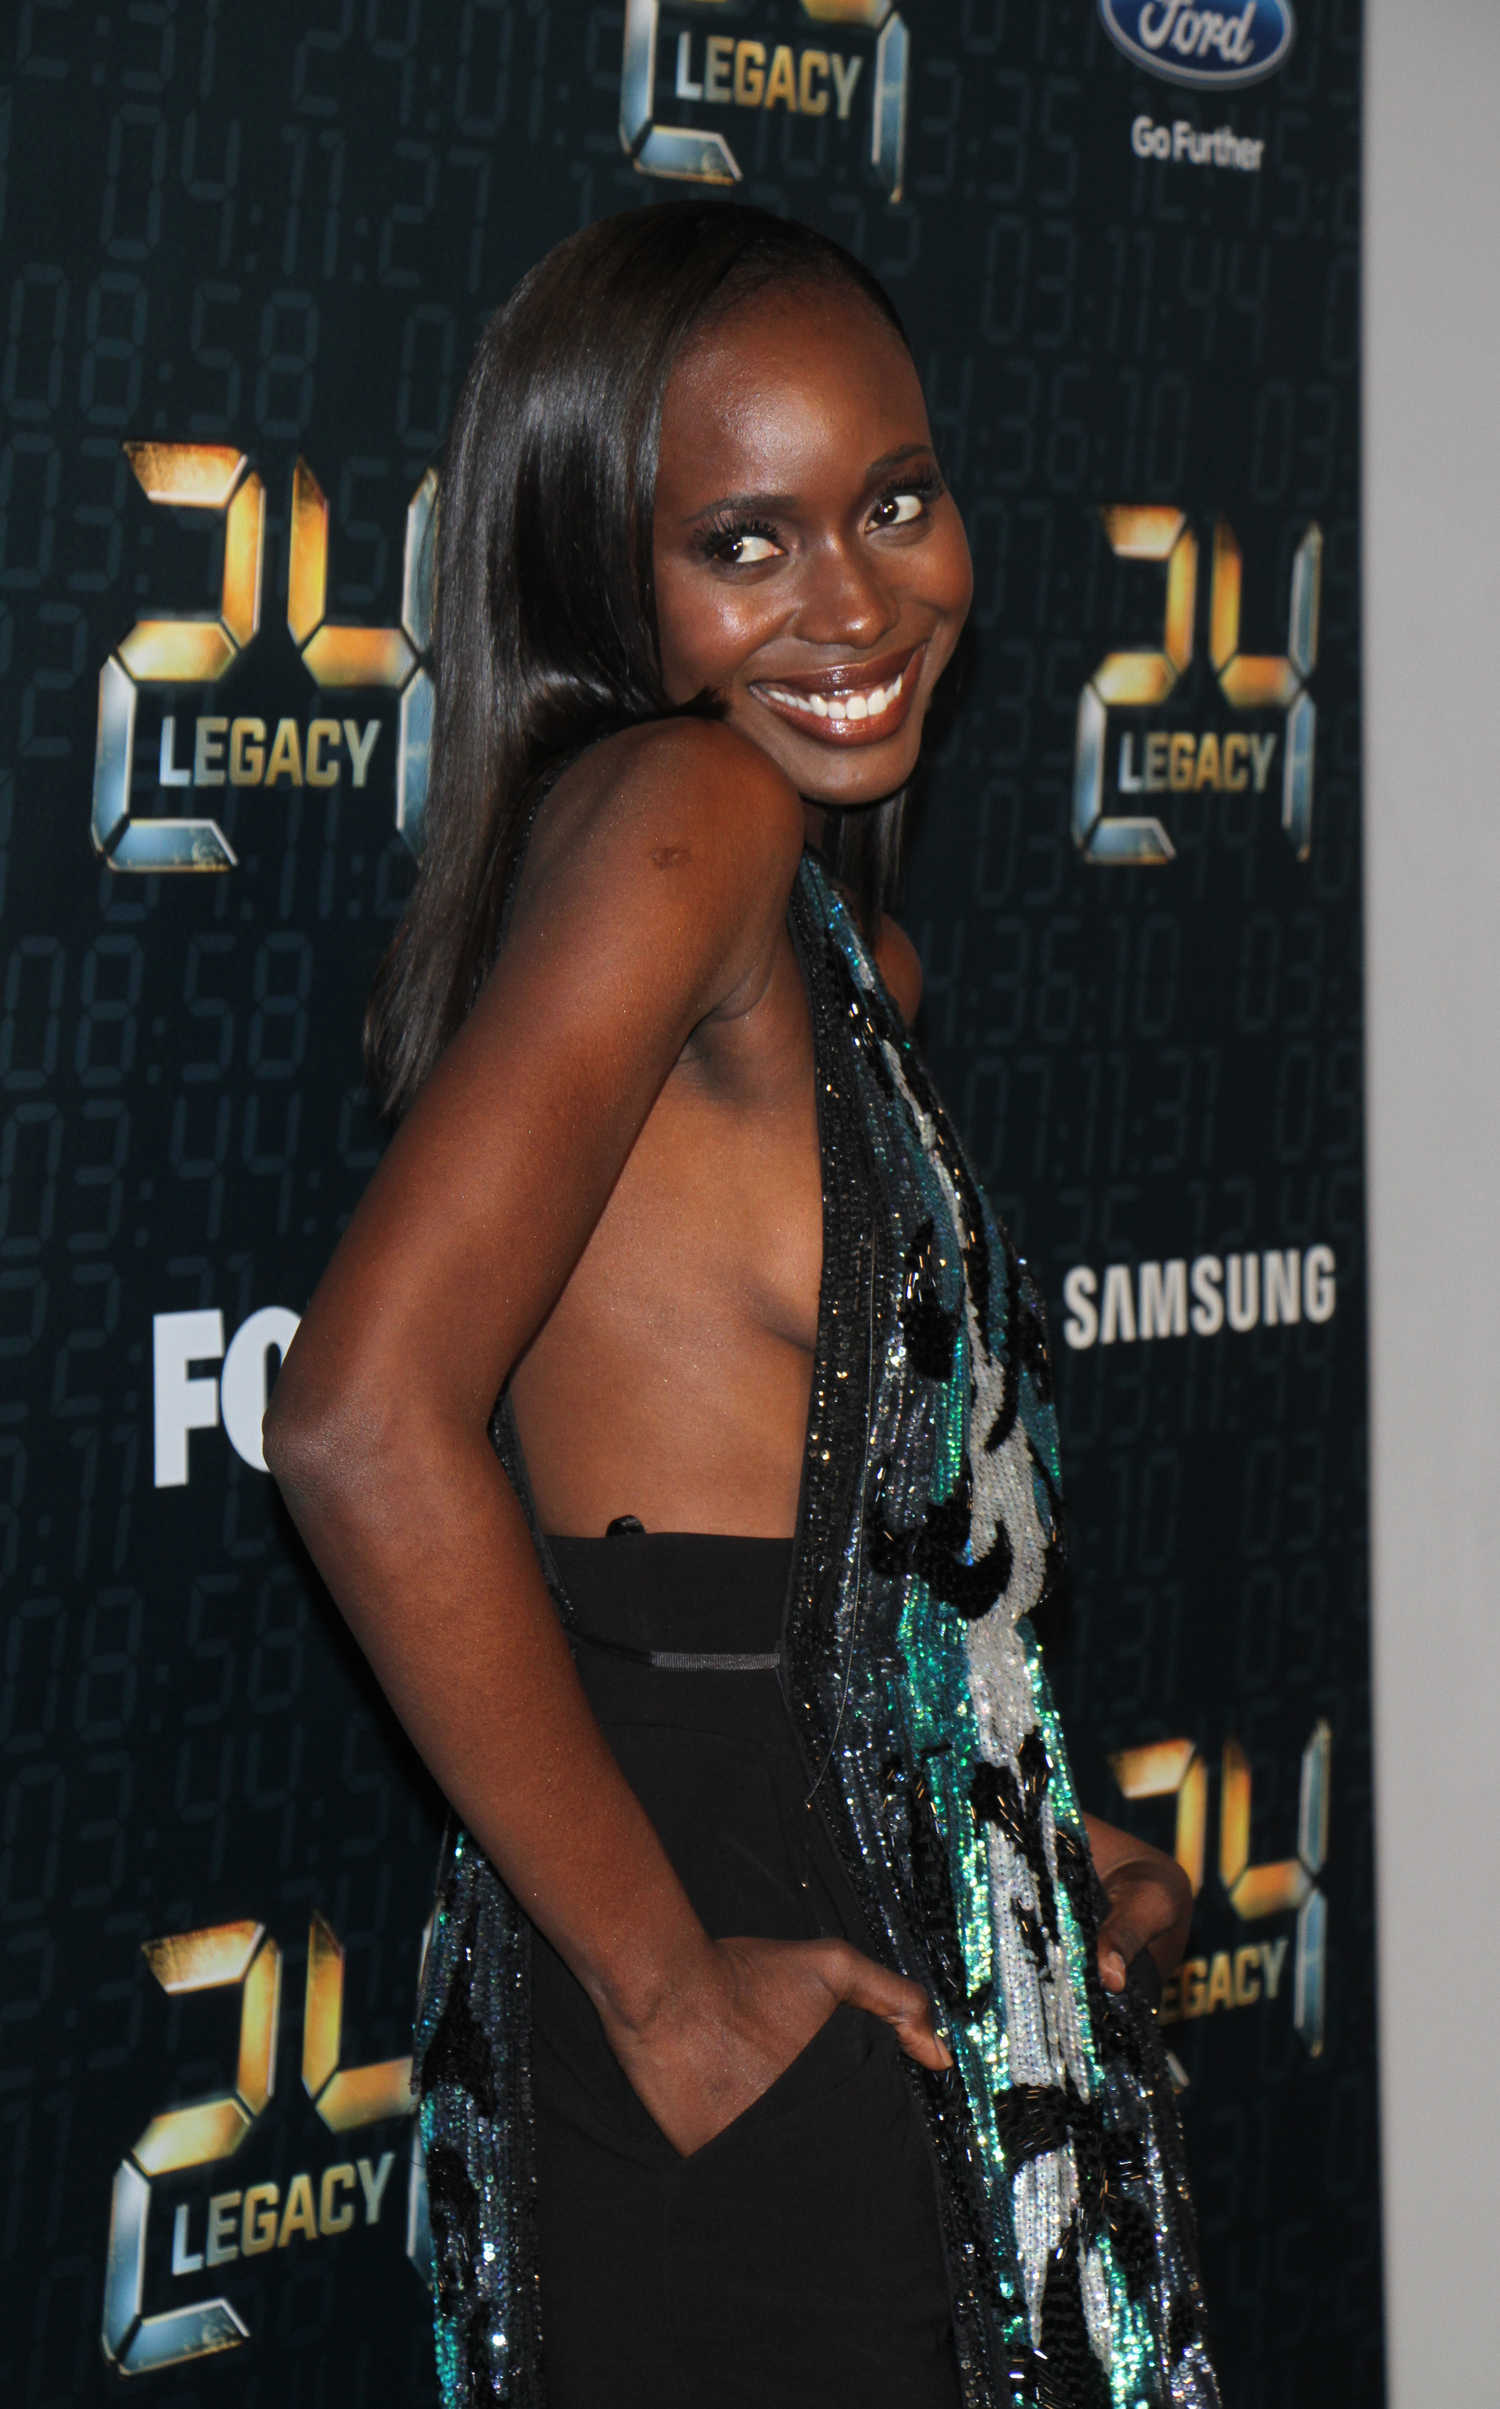 diop at the 24 legacy tv show premiere in new york celeb donut